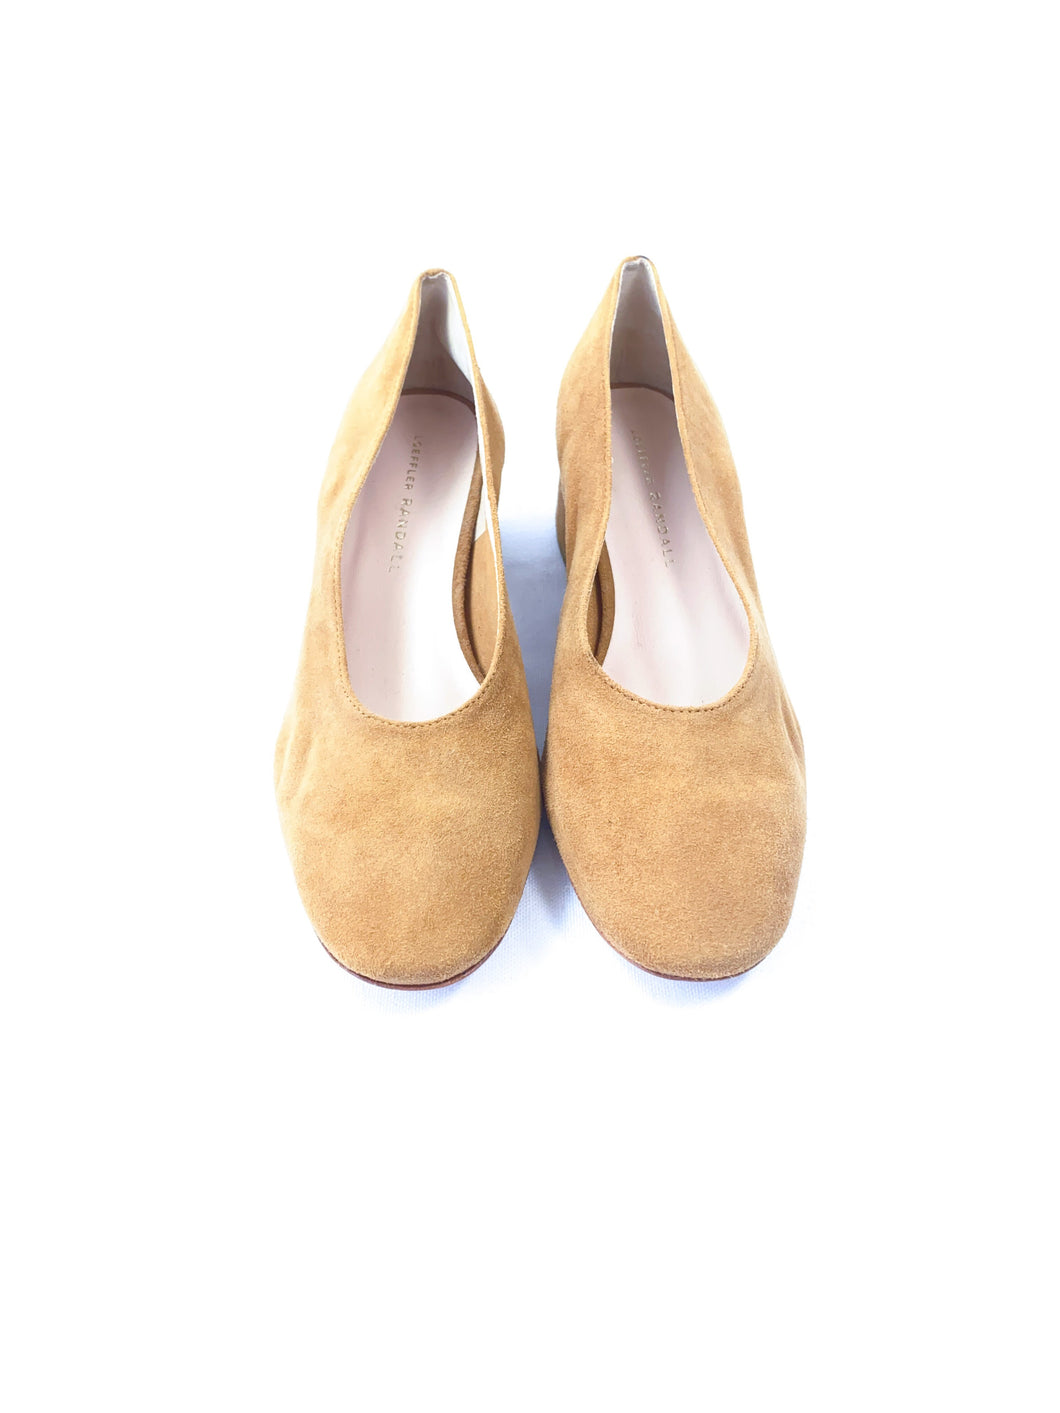 Loeffler Randal tan suede pumps size 7 - My Girlfriend's Wardrobe York Pa